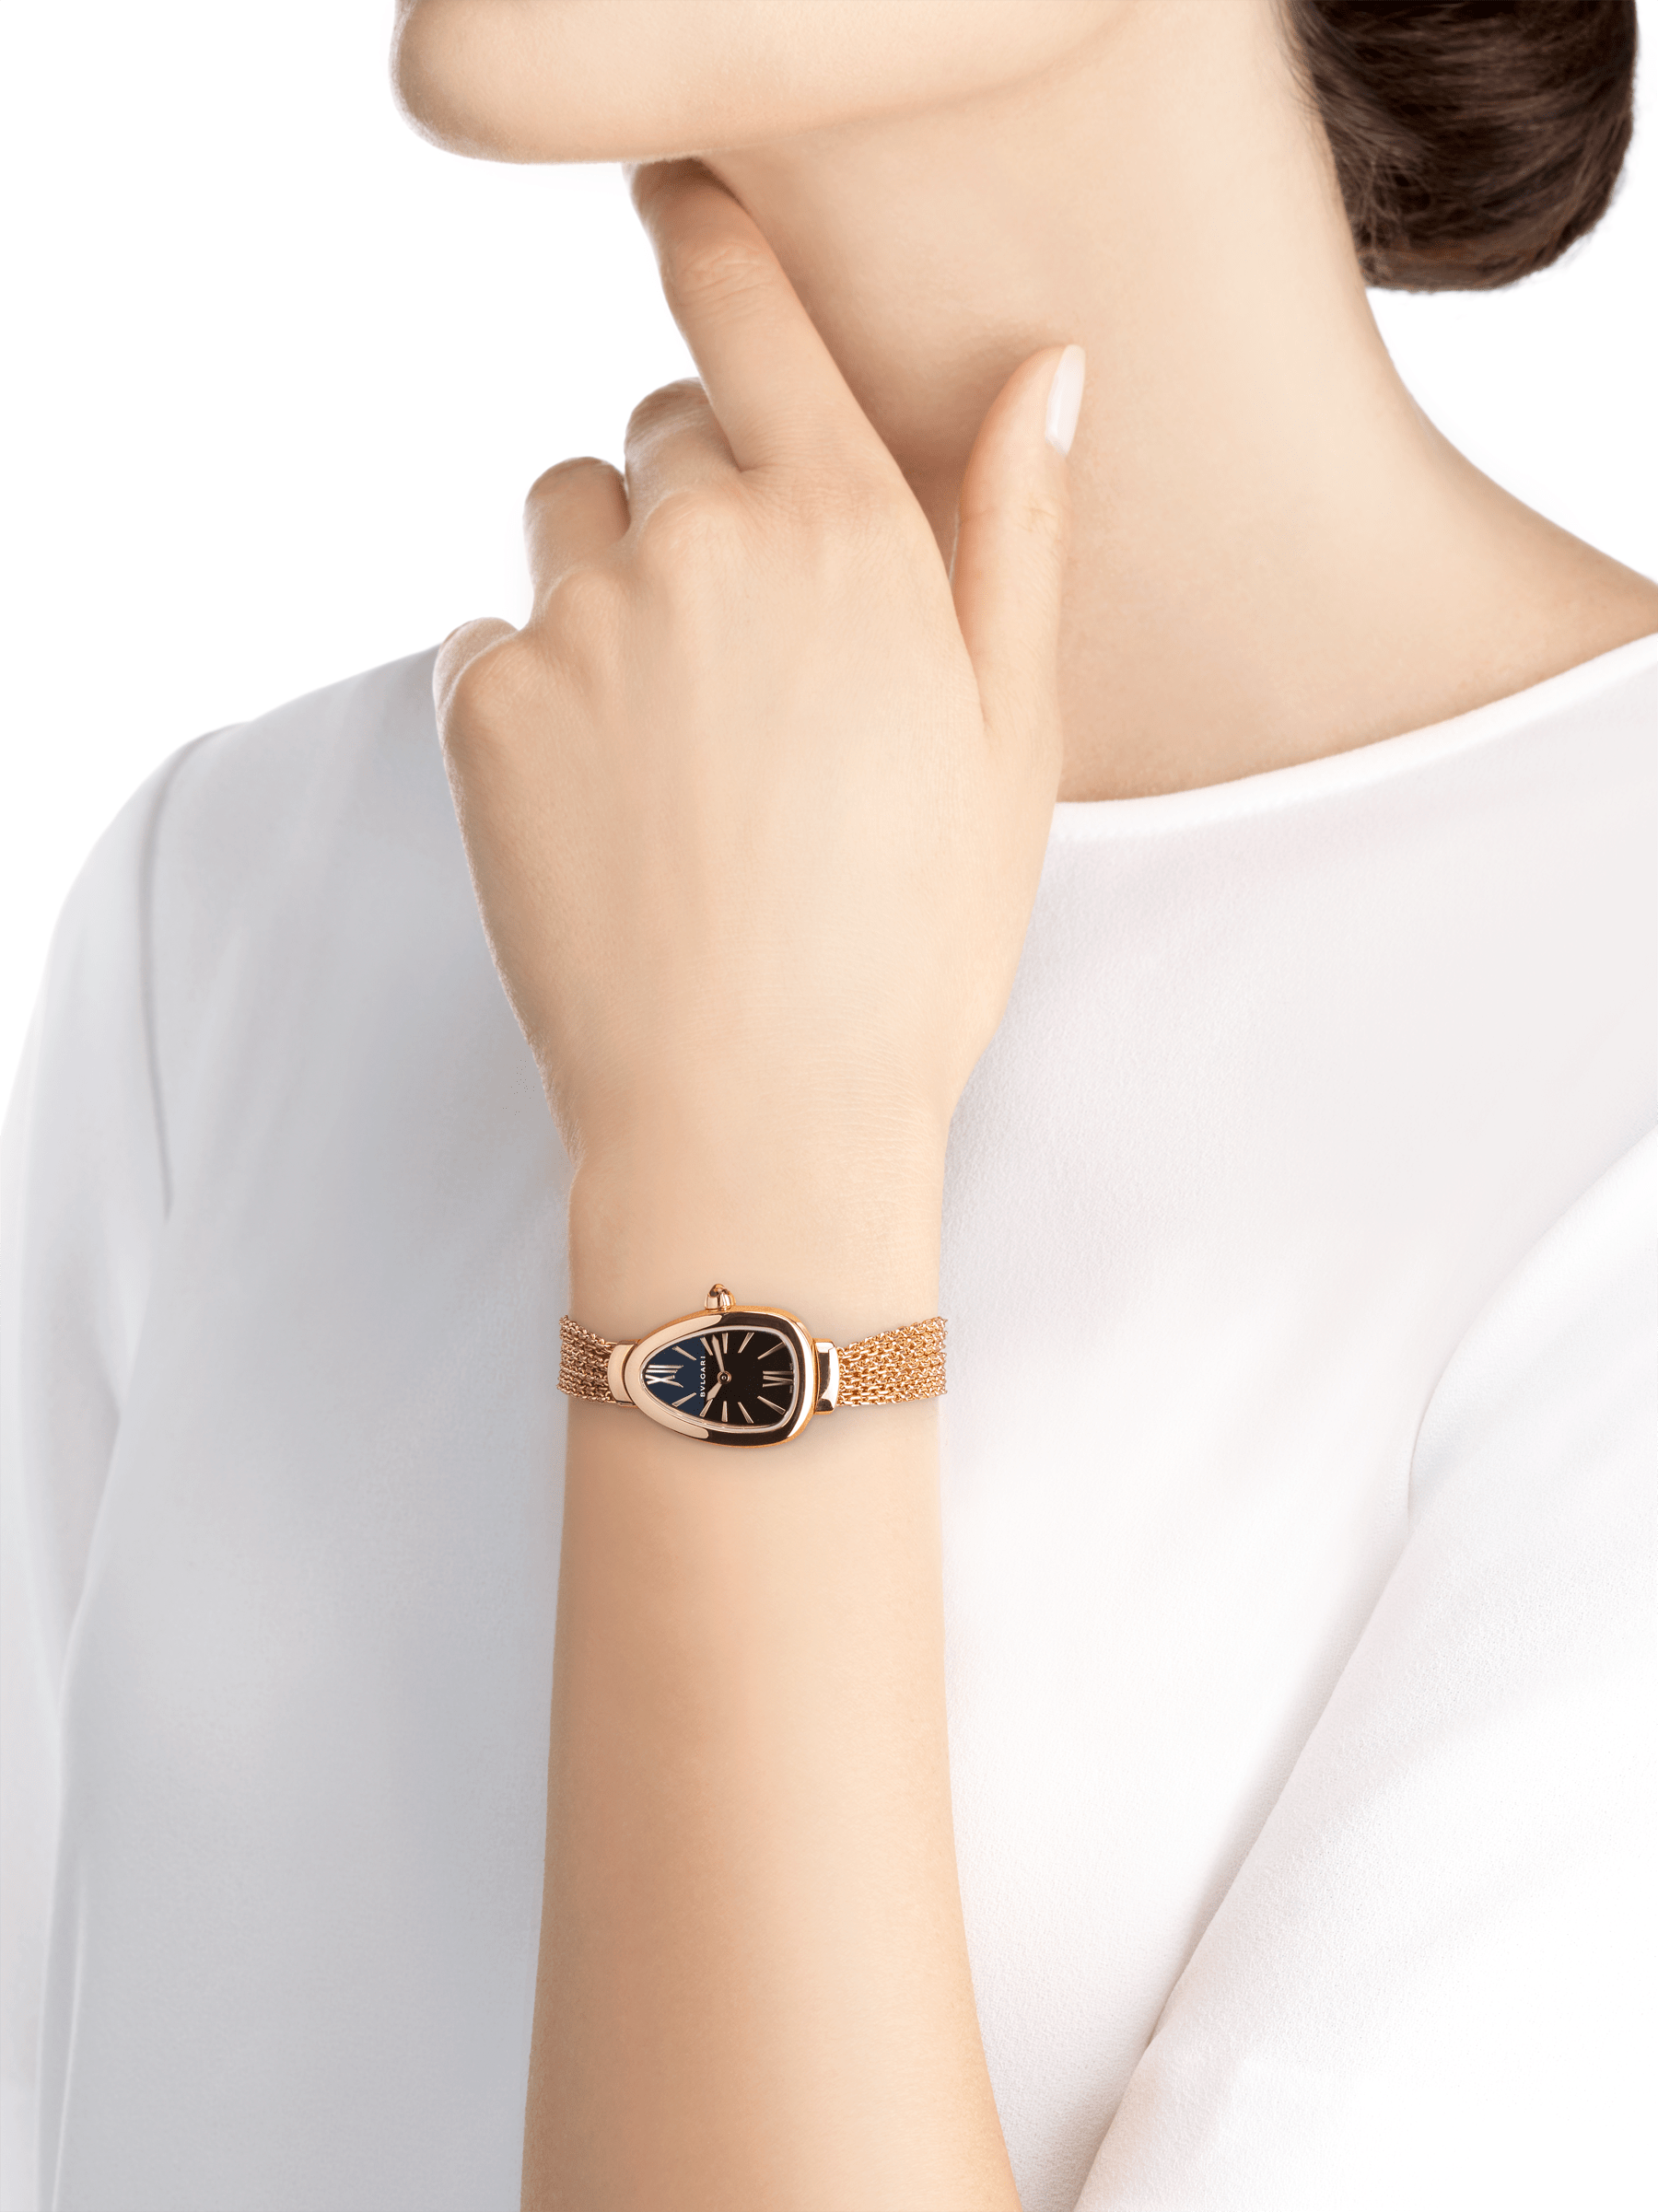 Serpenti watch in 18 kt rose gold case and interchangeable chain bracelet, with black lacquered dial 102728 image 4